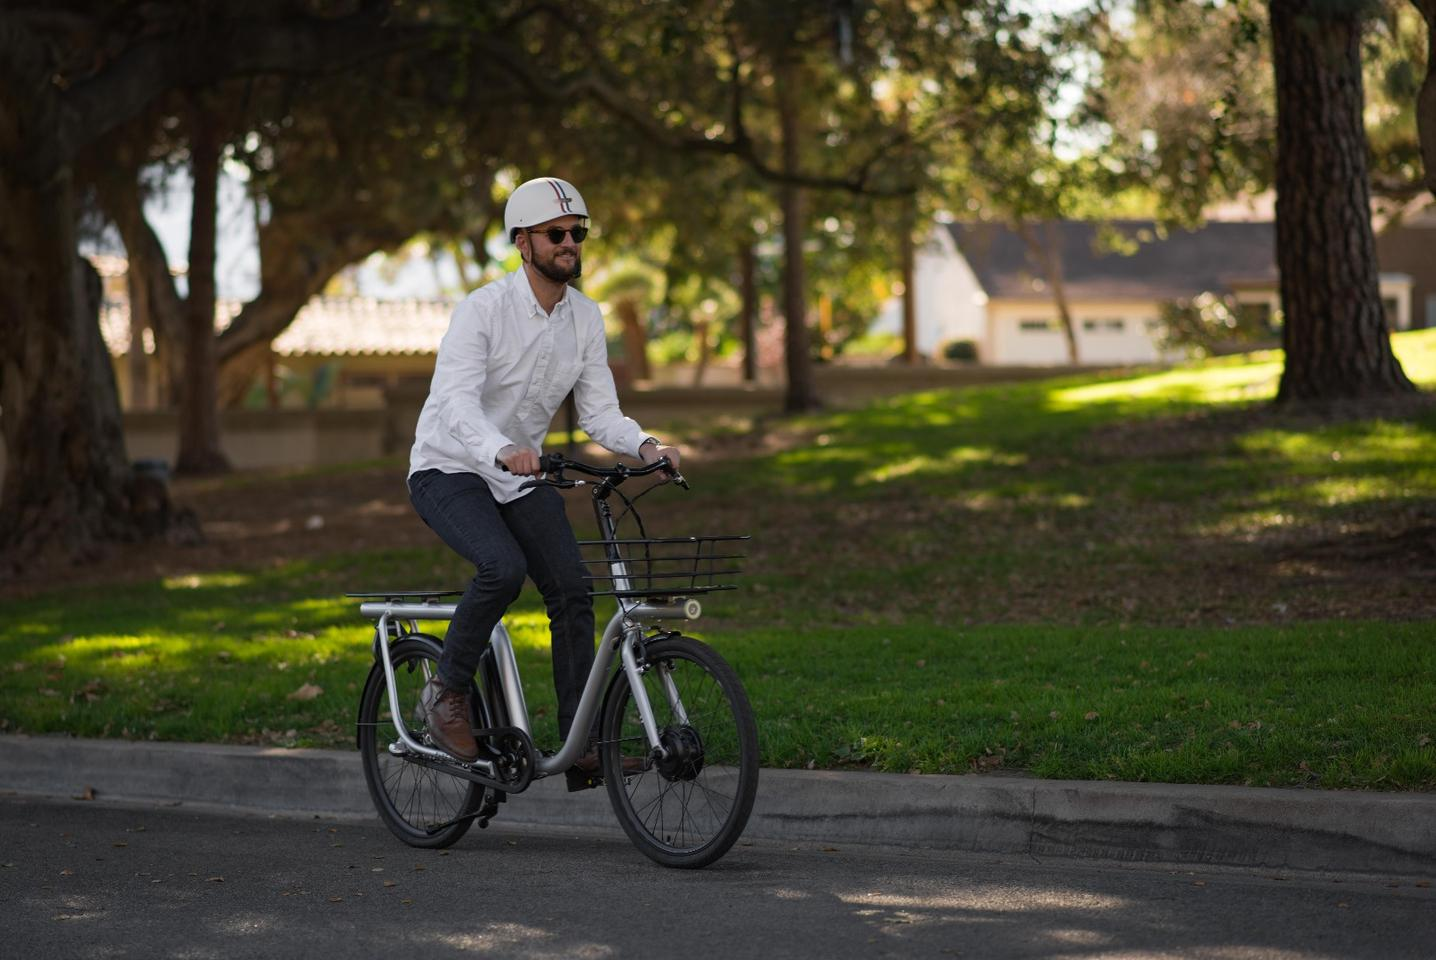 The Capacita smart cargo e-bike is the subject of an Indiegogo crowdfunding campaign